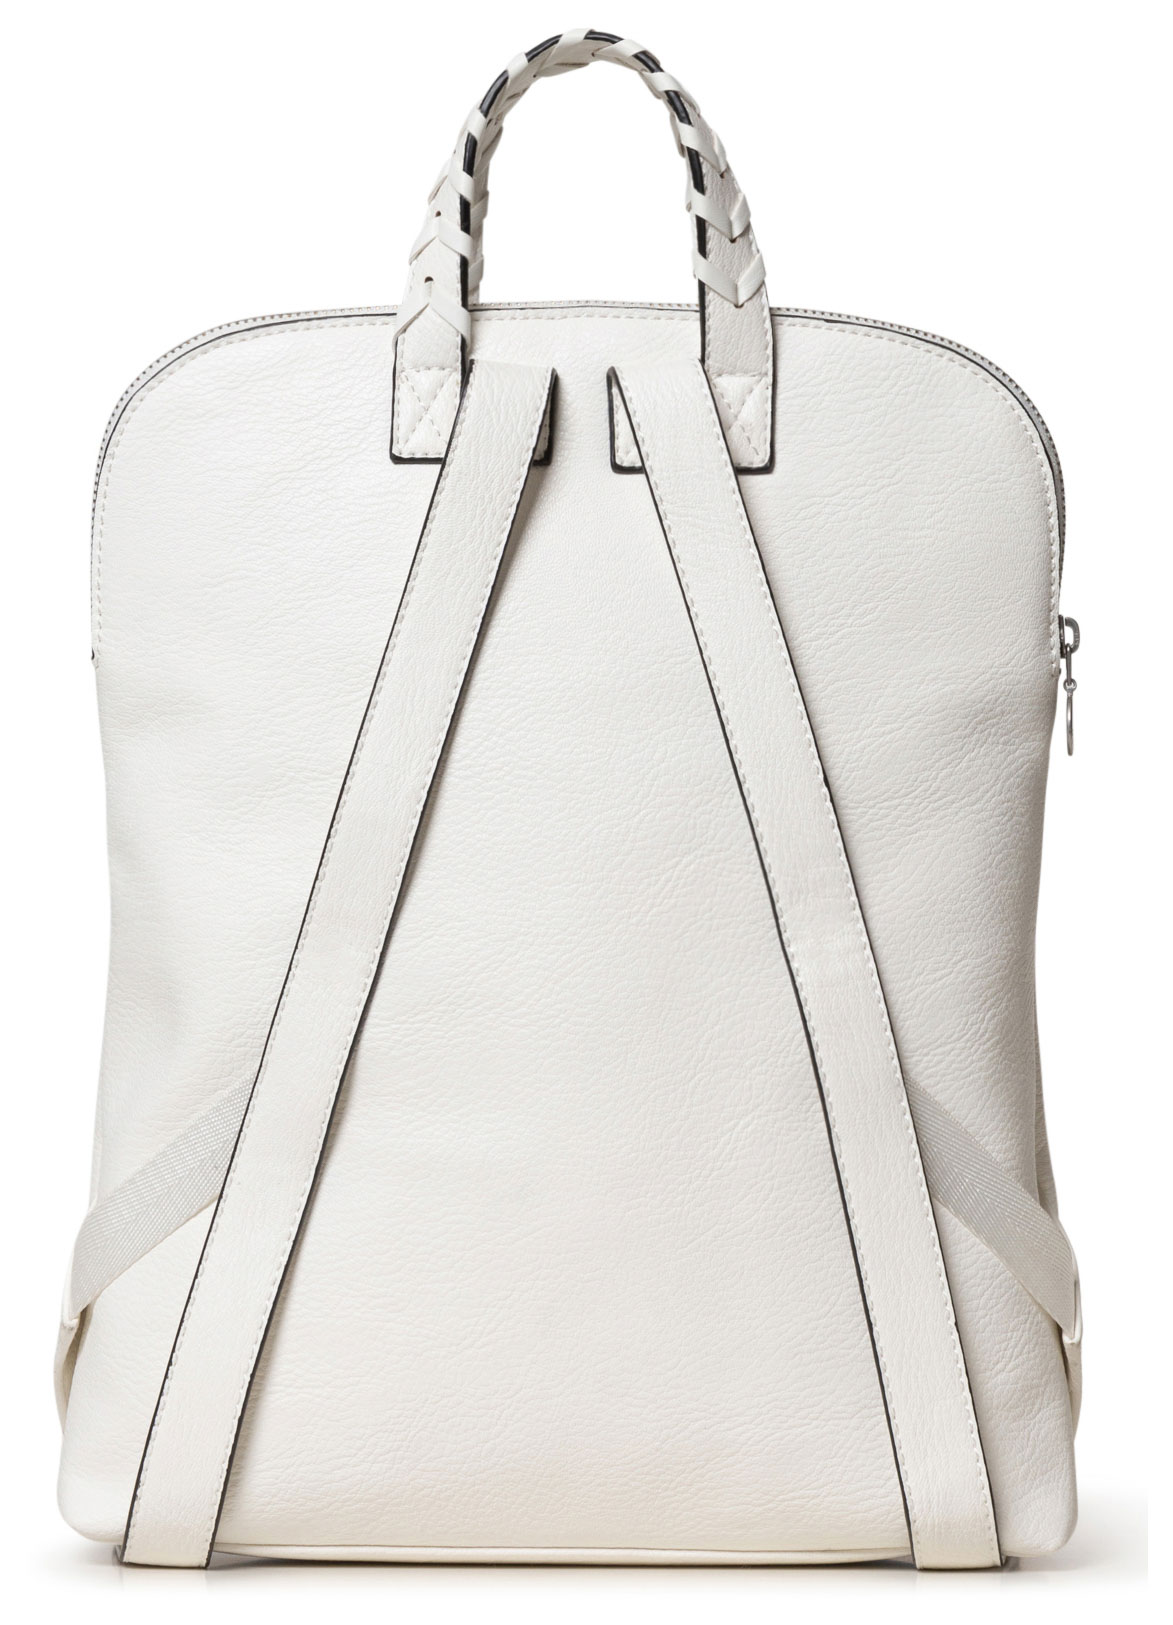 Desigual White Backpack Back Azabache Nanaimo